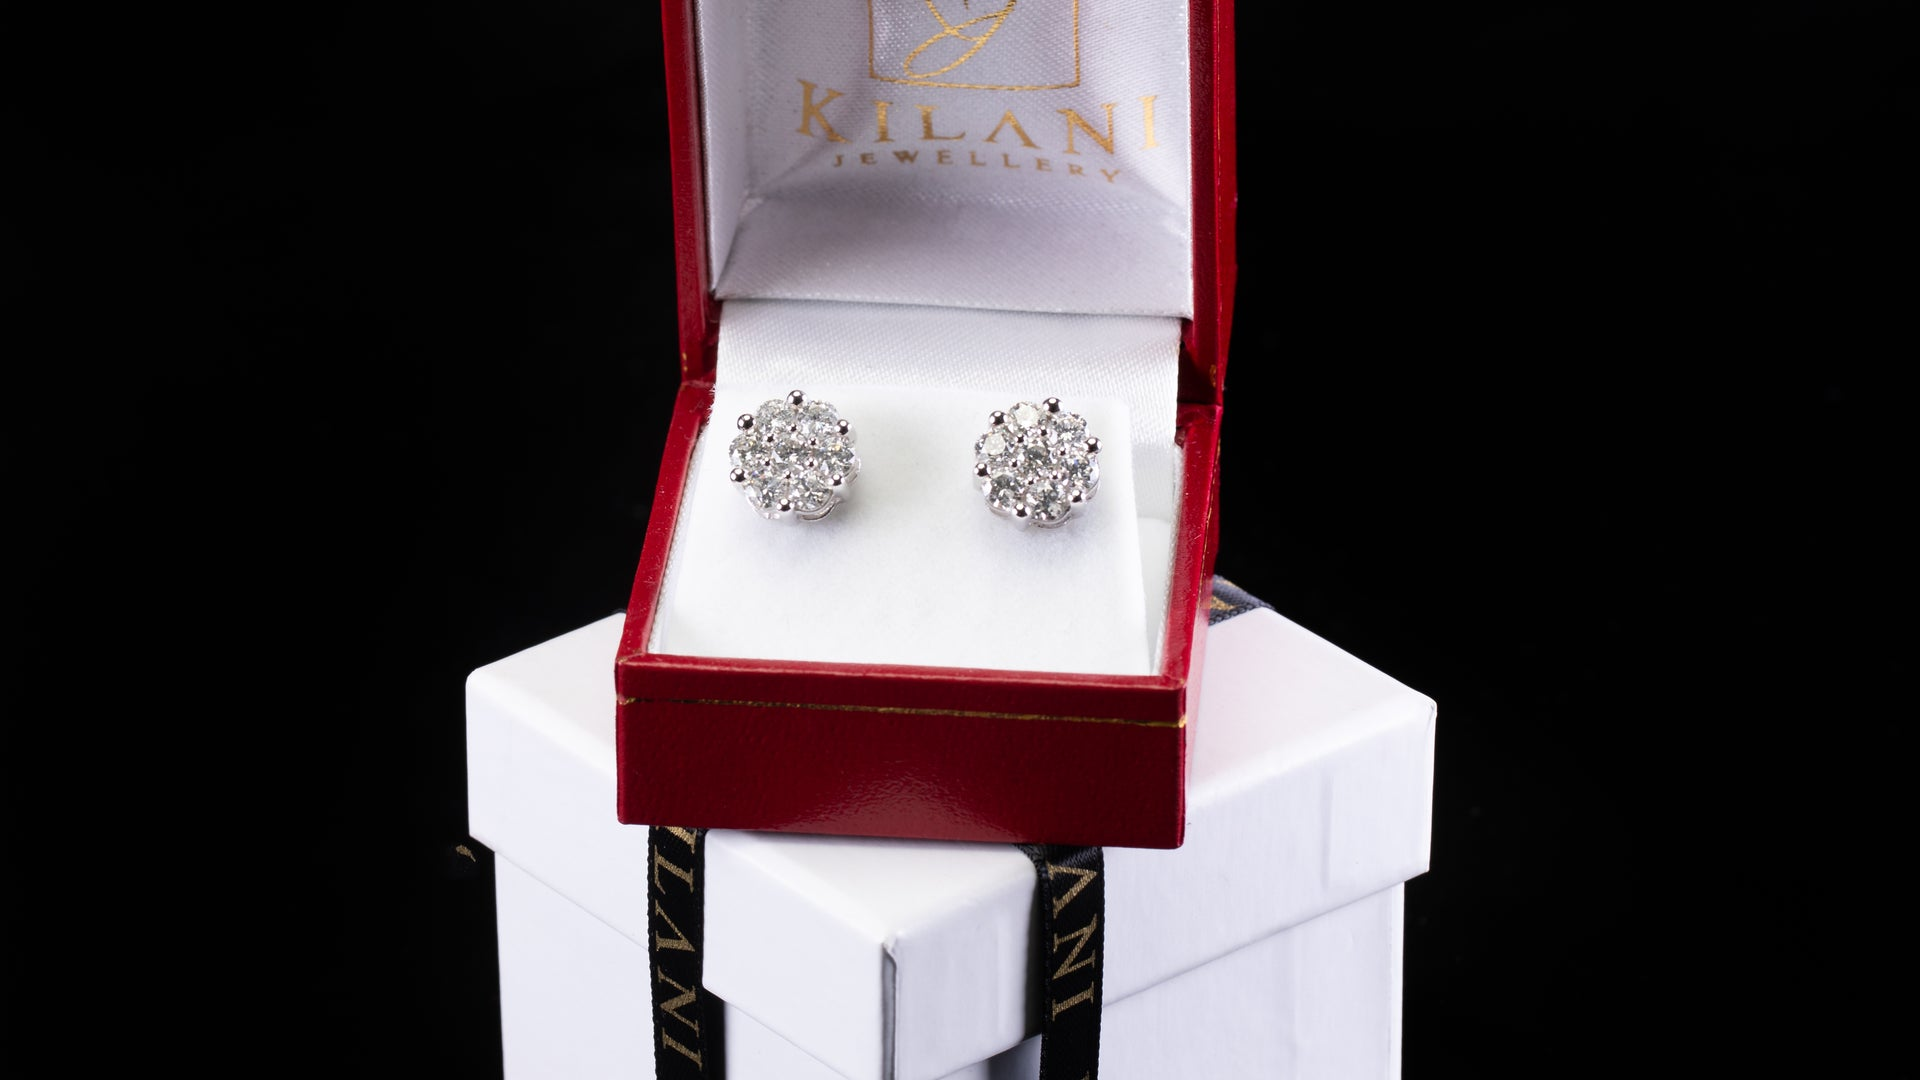 [SPECIAL] 14k White Gold Honey Comb Style 1 Diamond Earrings